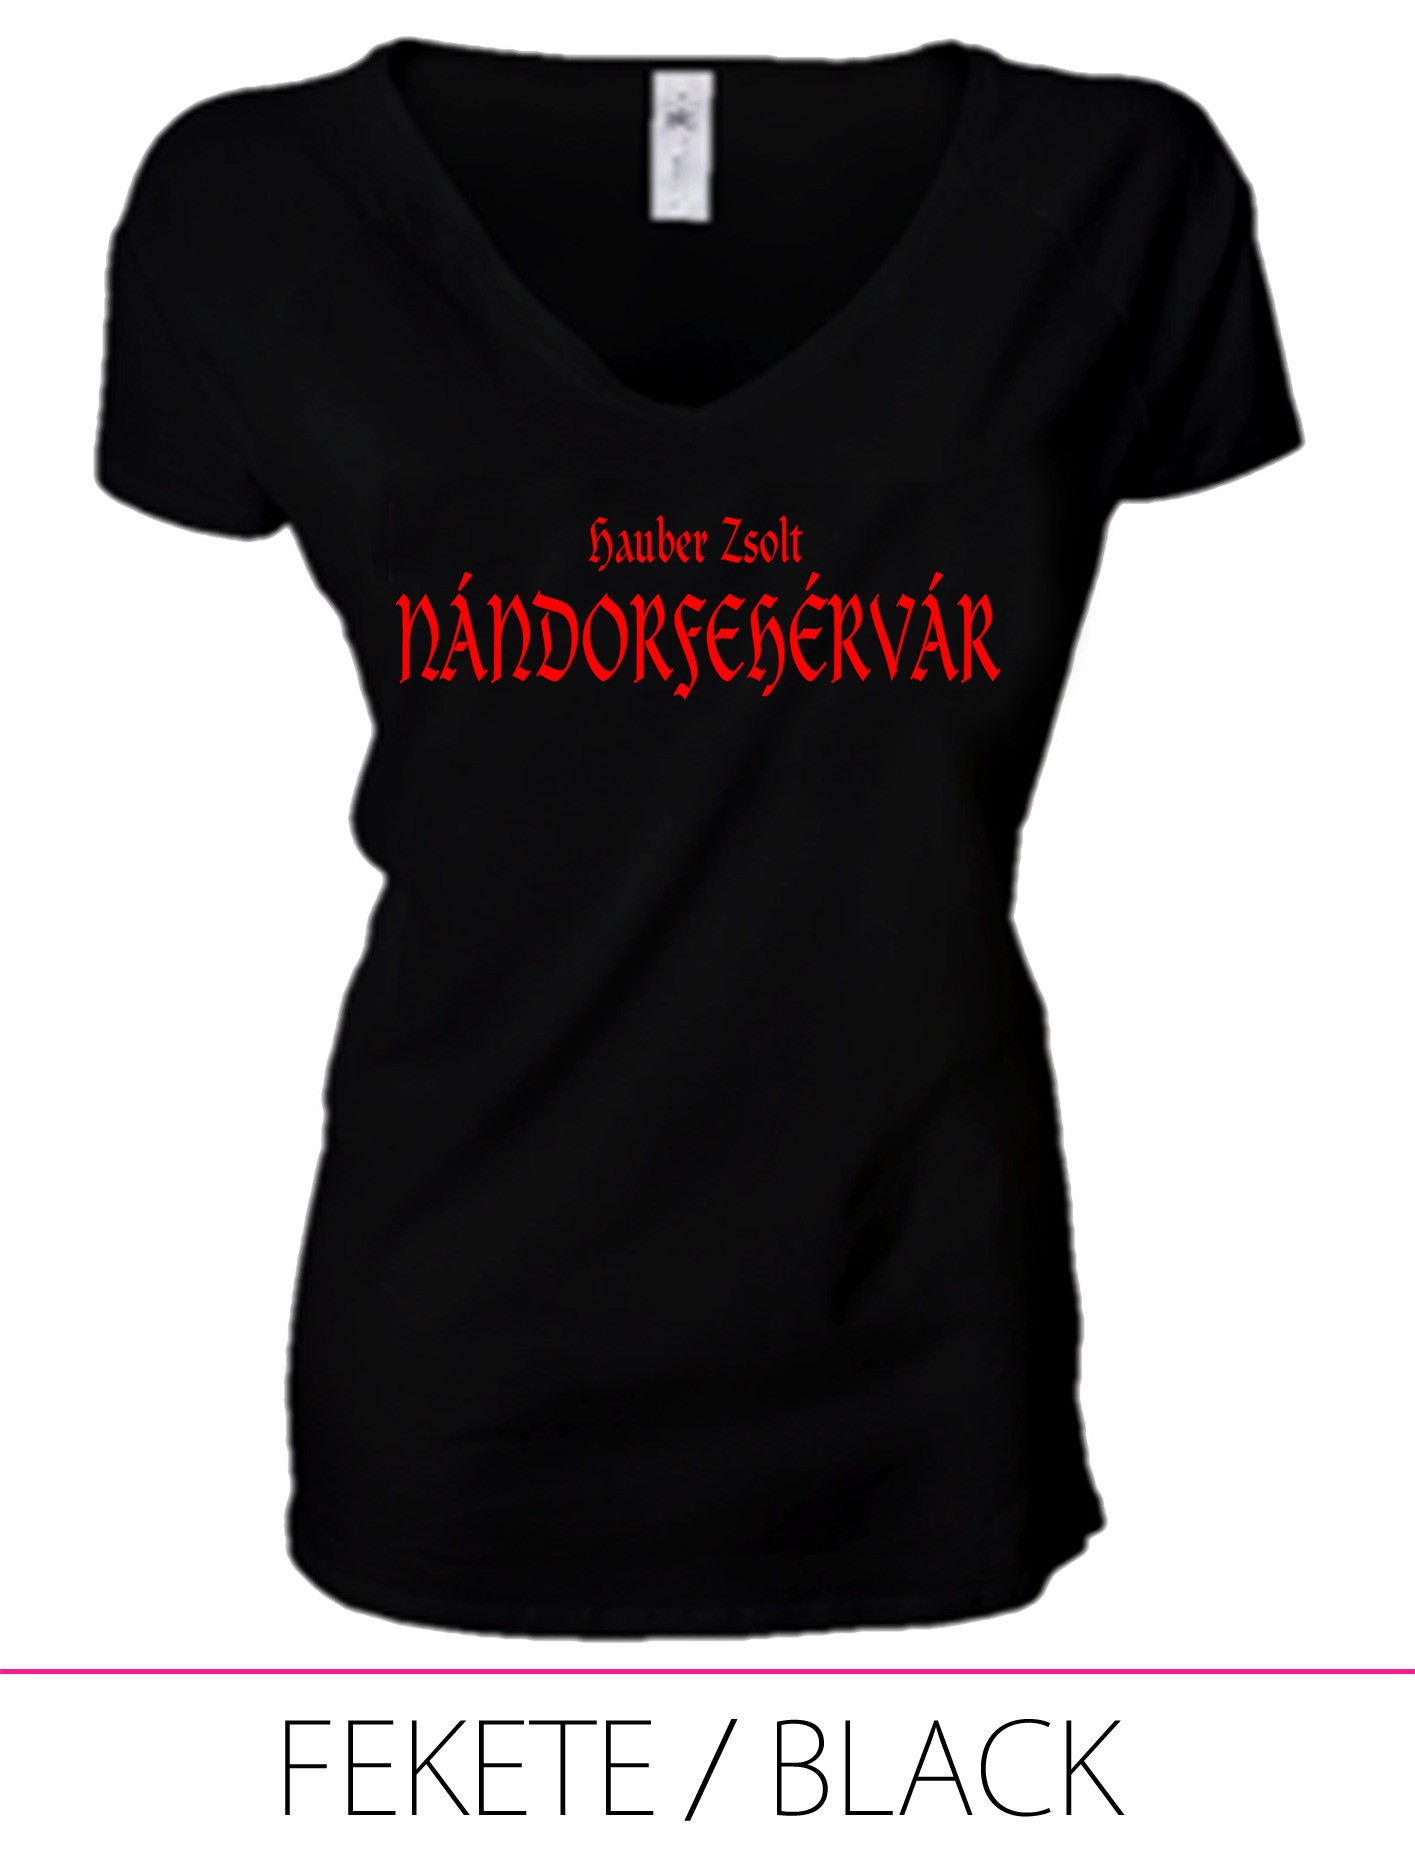 LADIES PREMIUM V NECK T-SHIRT NÁNDORFEHÉRVÁR BLACK